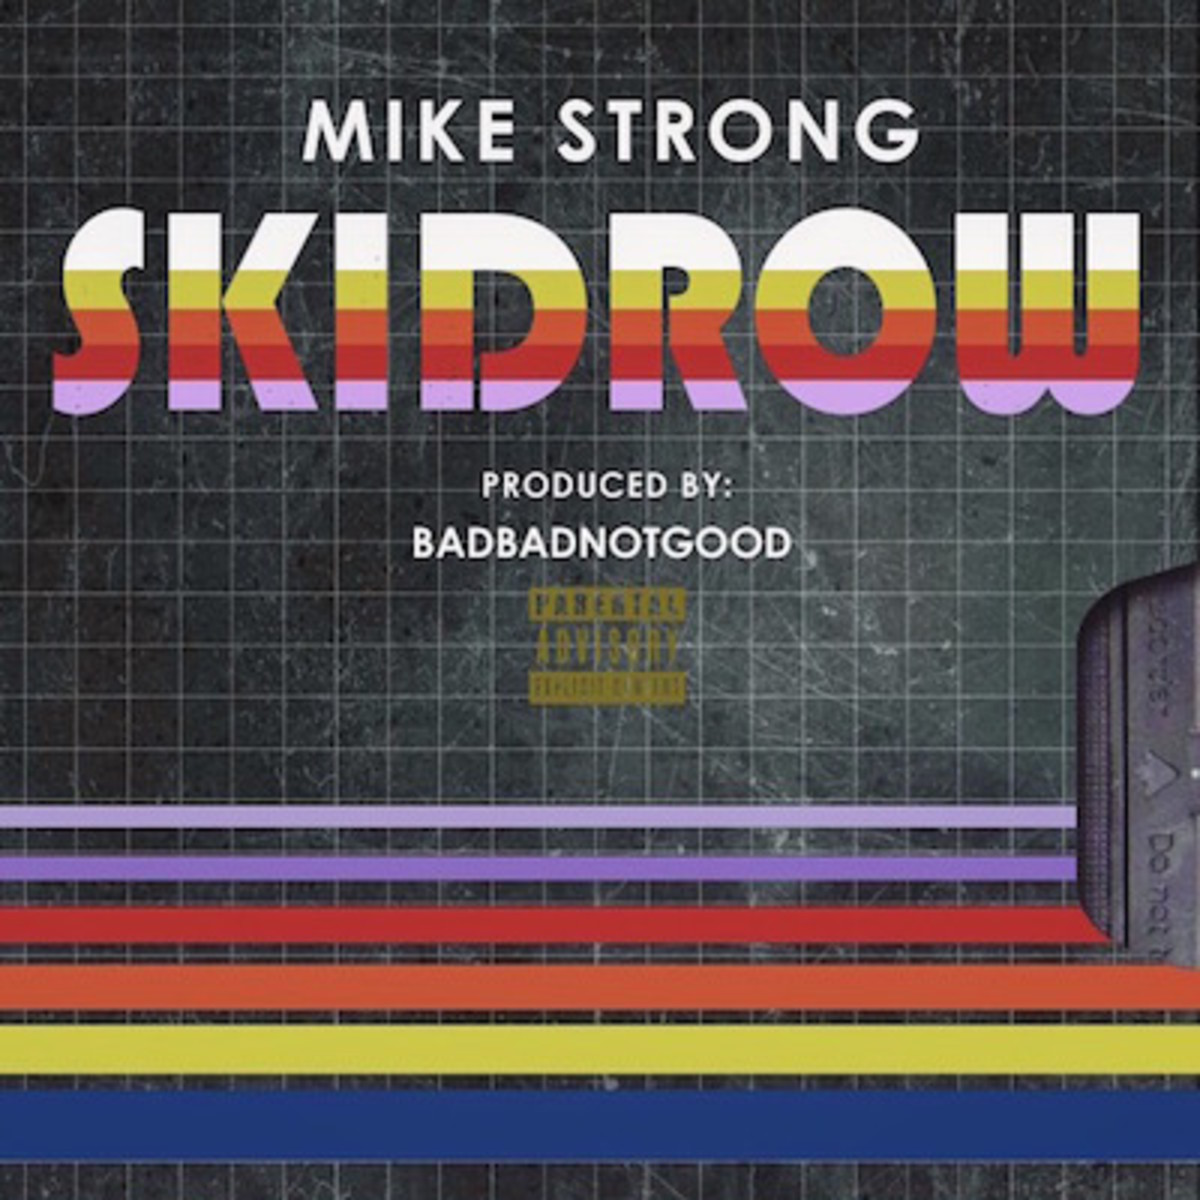 mike-strong-skid-row.jpg